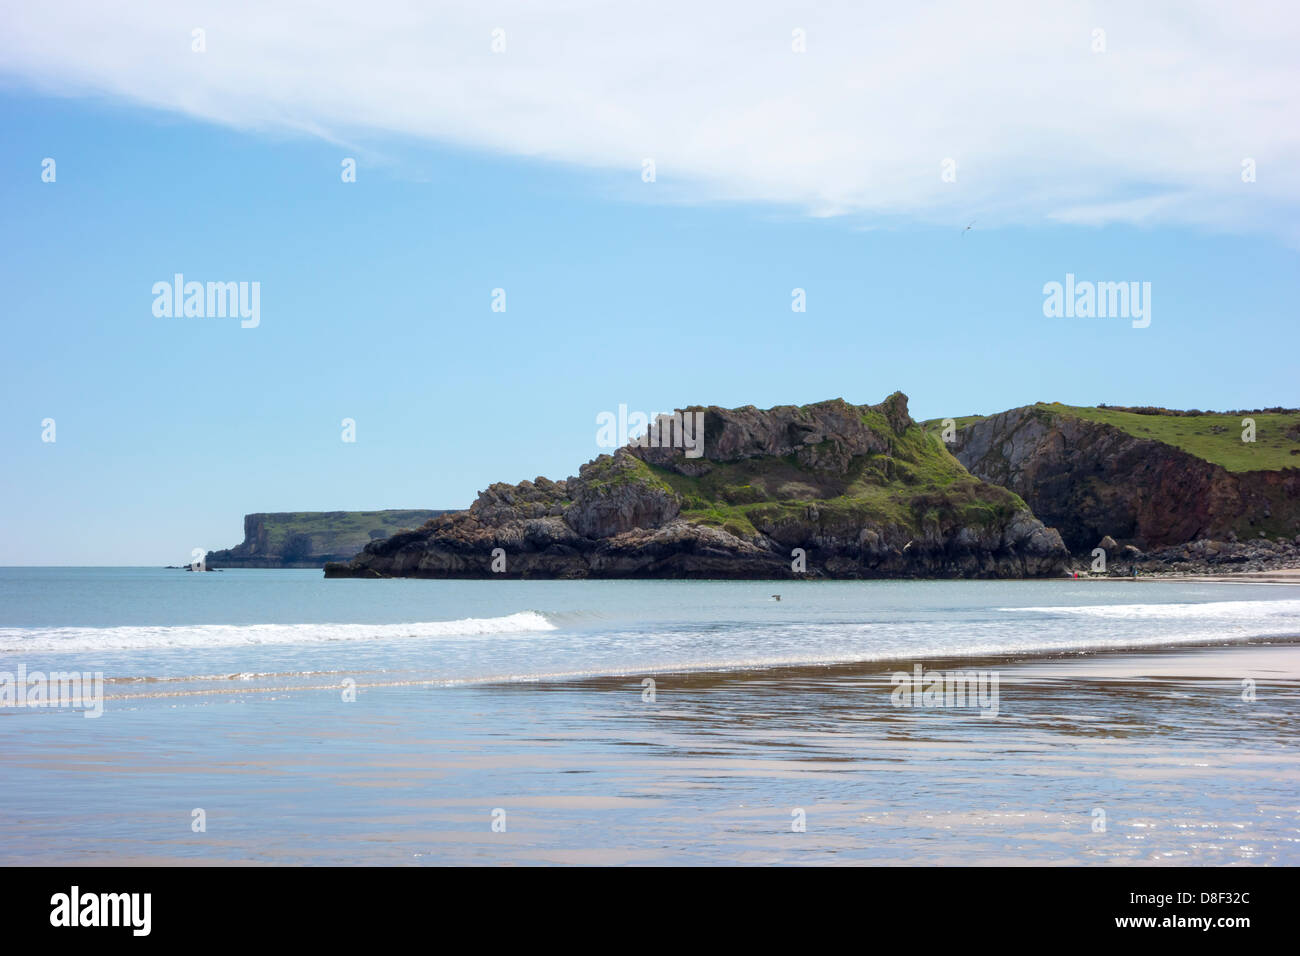 View along Broad Haven Beach at Bosherston, on the Pembrokeshire Coast National Park. - Stock Image